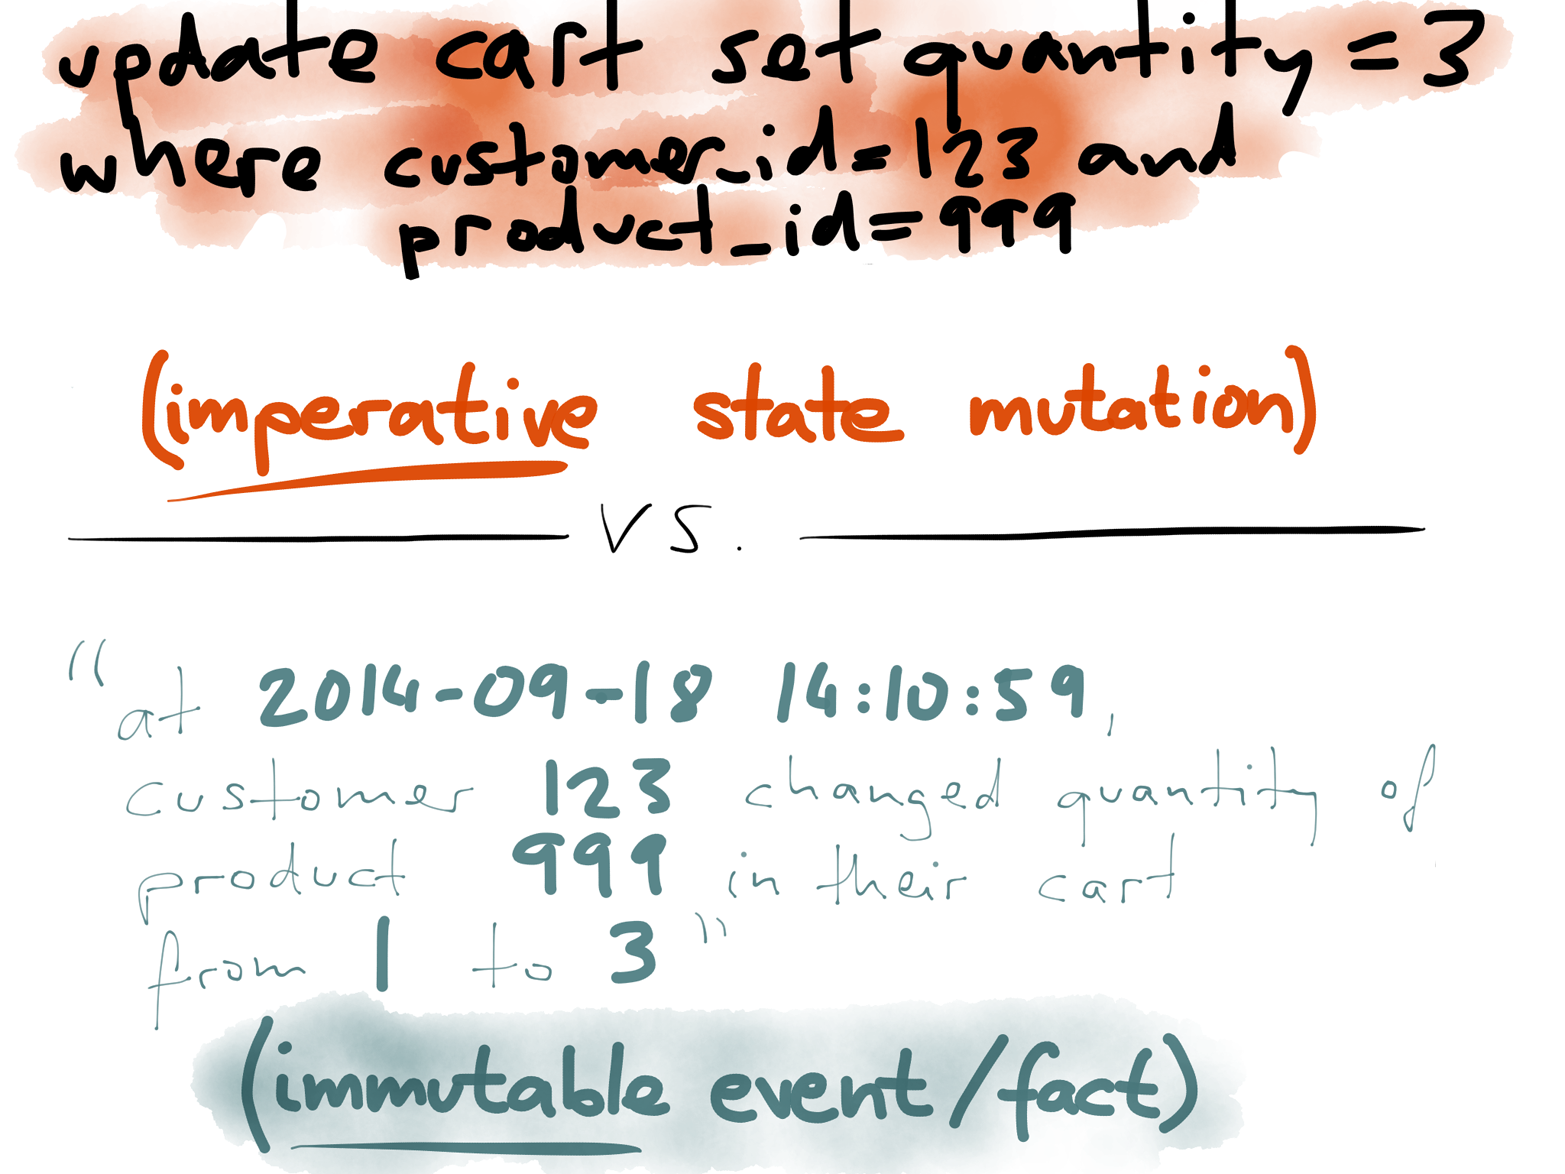 In a logical replication log, imperative commands are transformed into immutable change events.